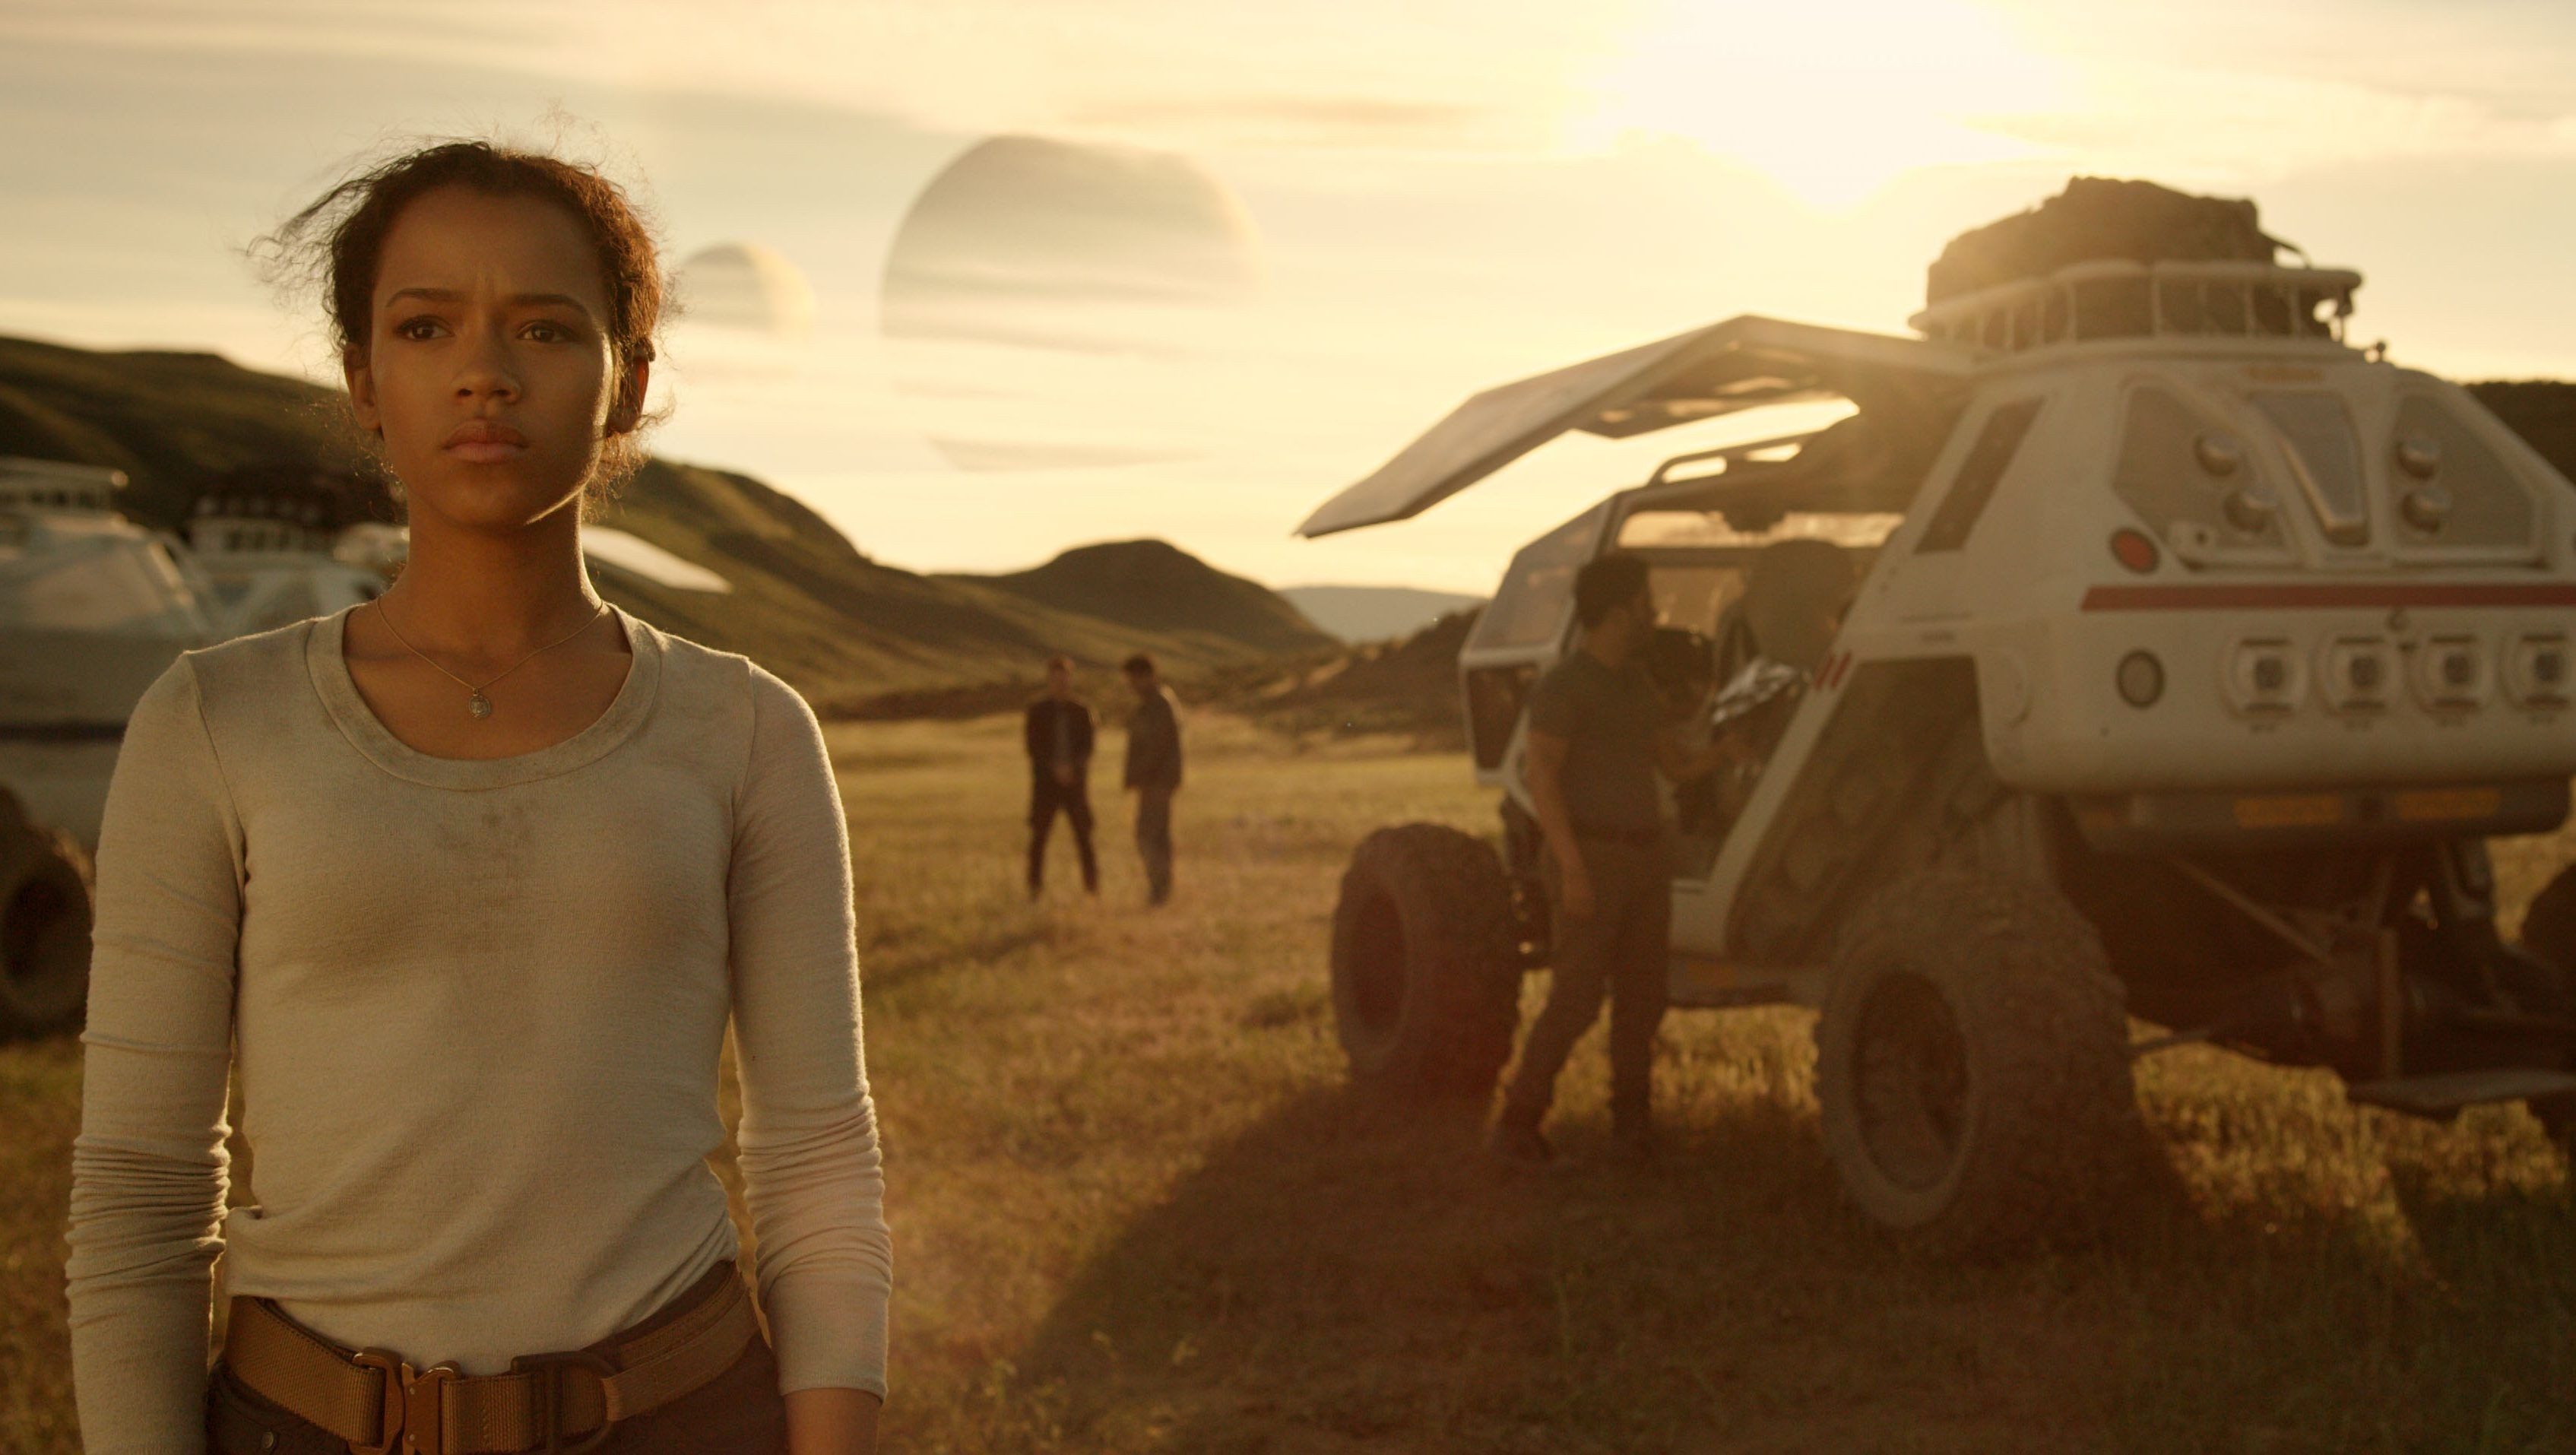 Lost in space movie pictures M/